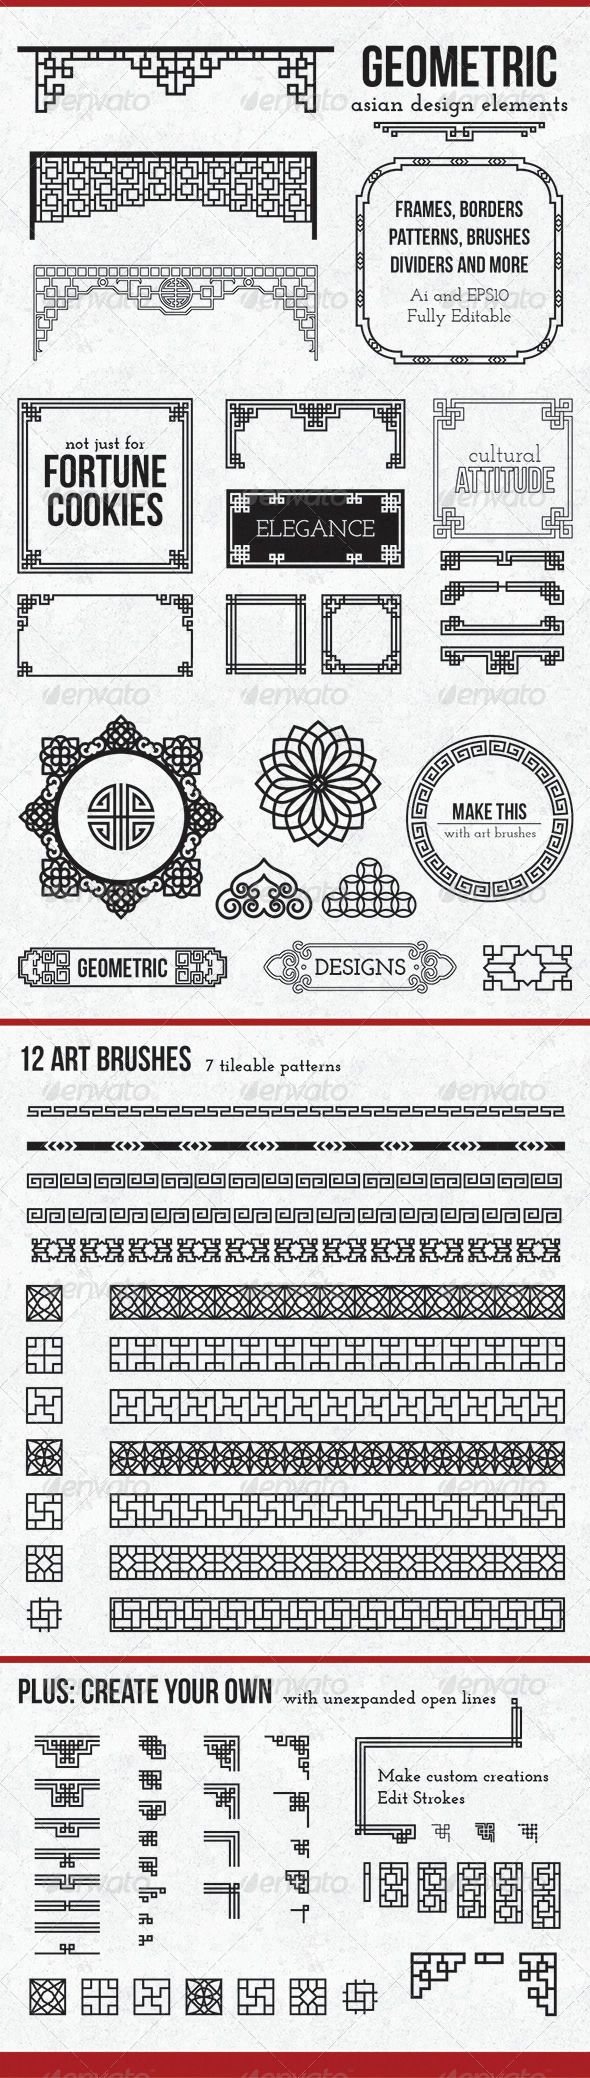 Geometric Asian Design Elements | Contexto, Mandalas y ...